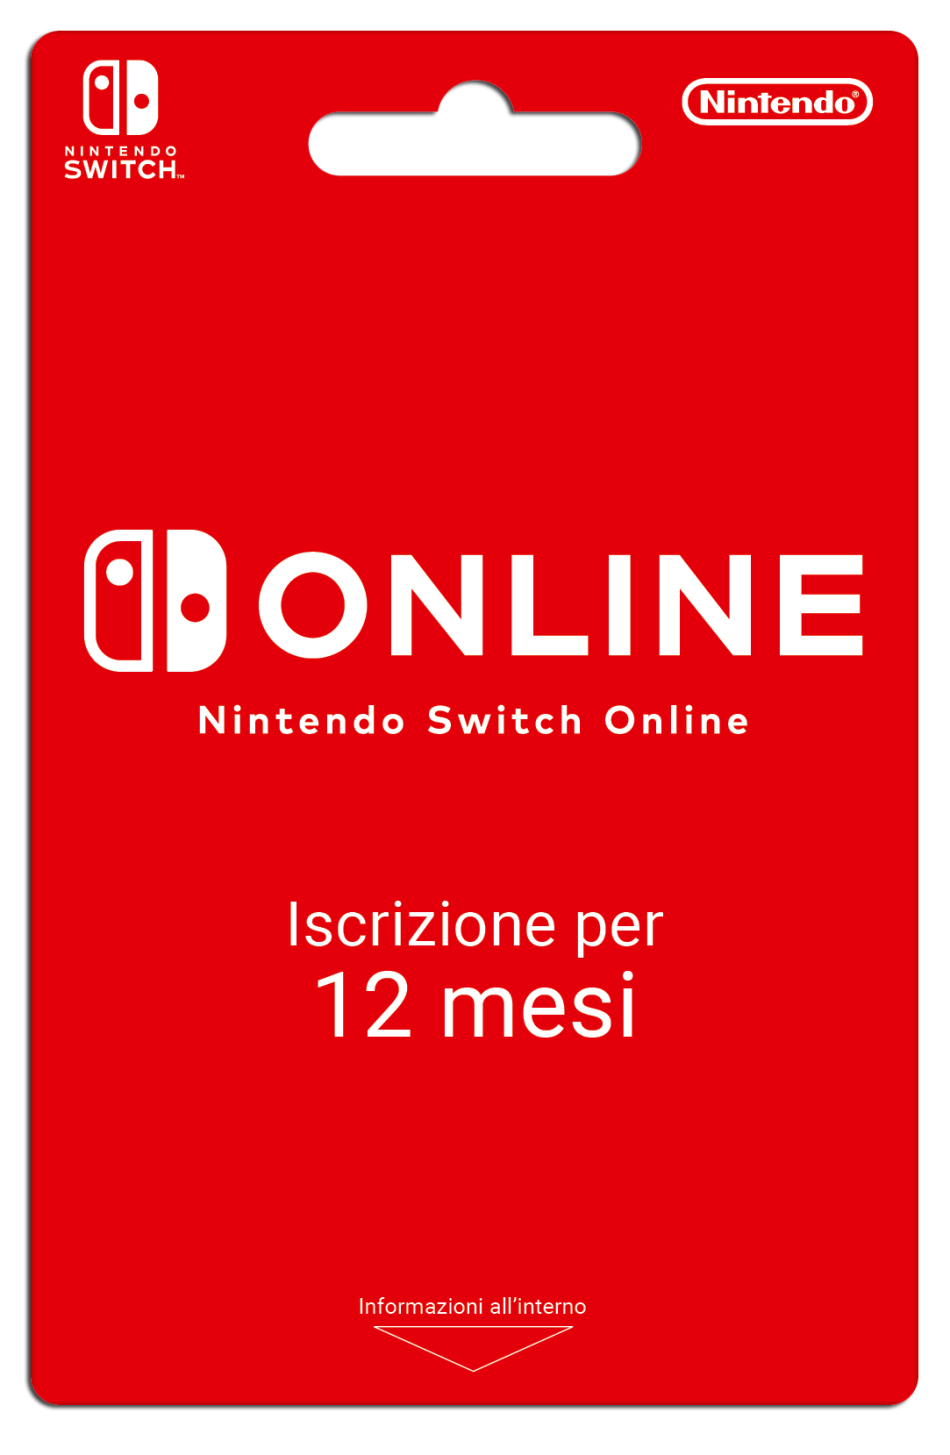 CI_NSwitch_Online_Pricing_Join_Membership_Card_IT.png